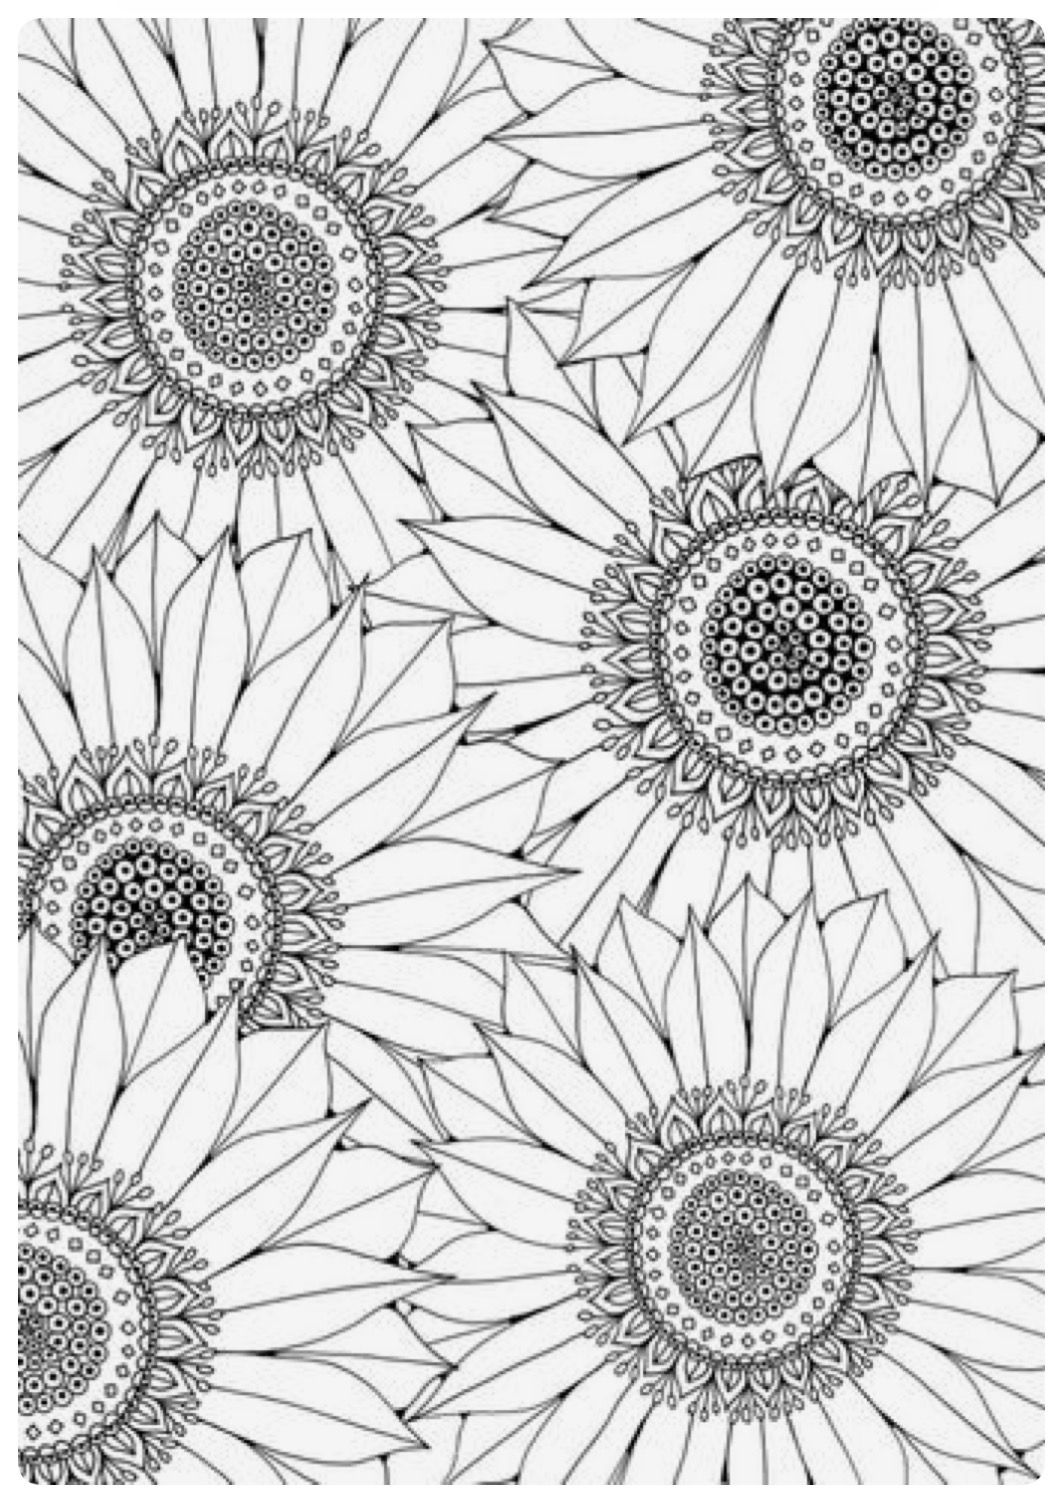 coloring pictures of sunflowers sunflower coloring pages to download and print for free pictures of sunflowers coloring